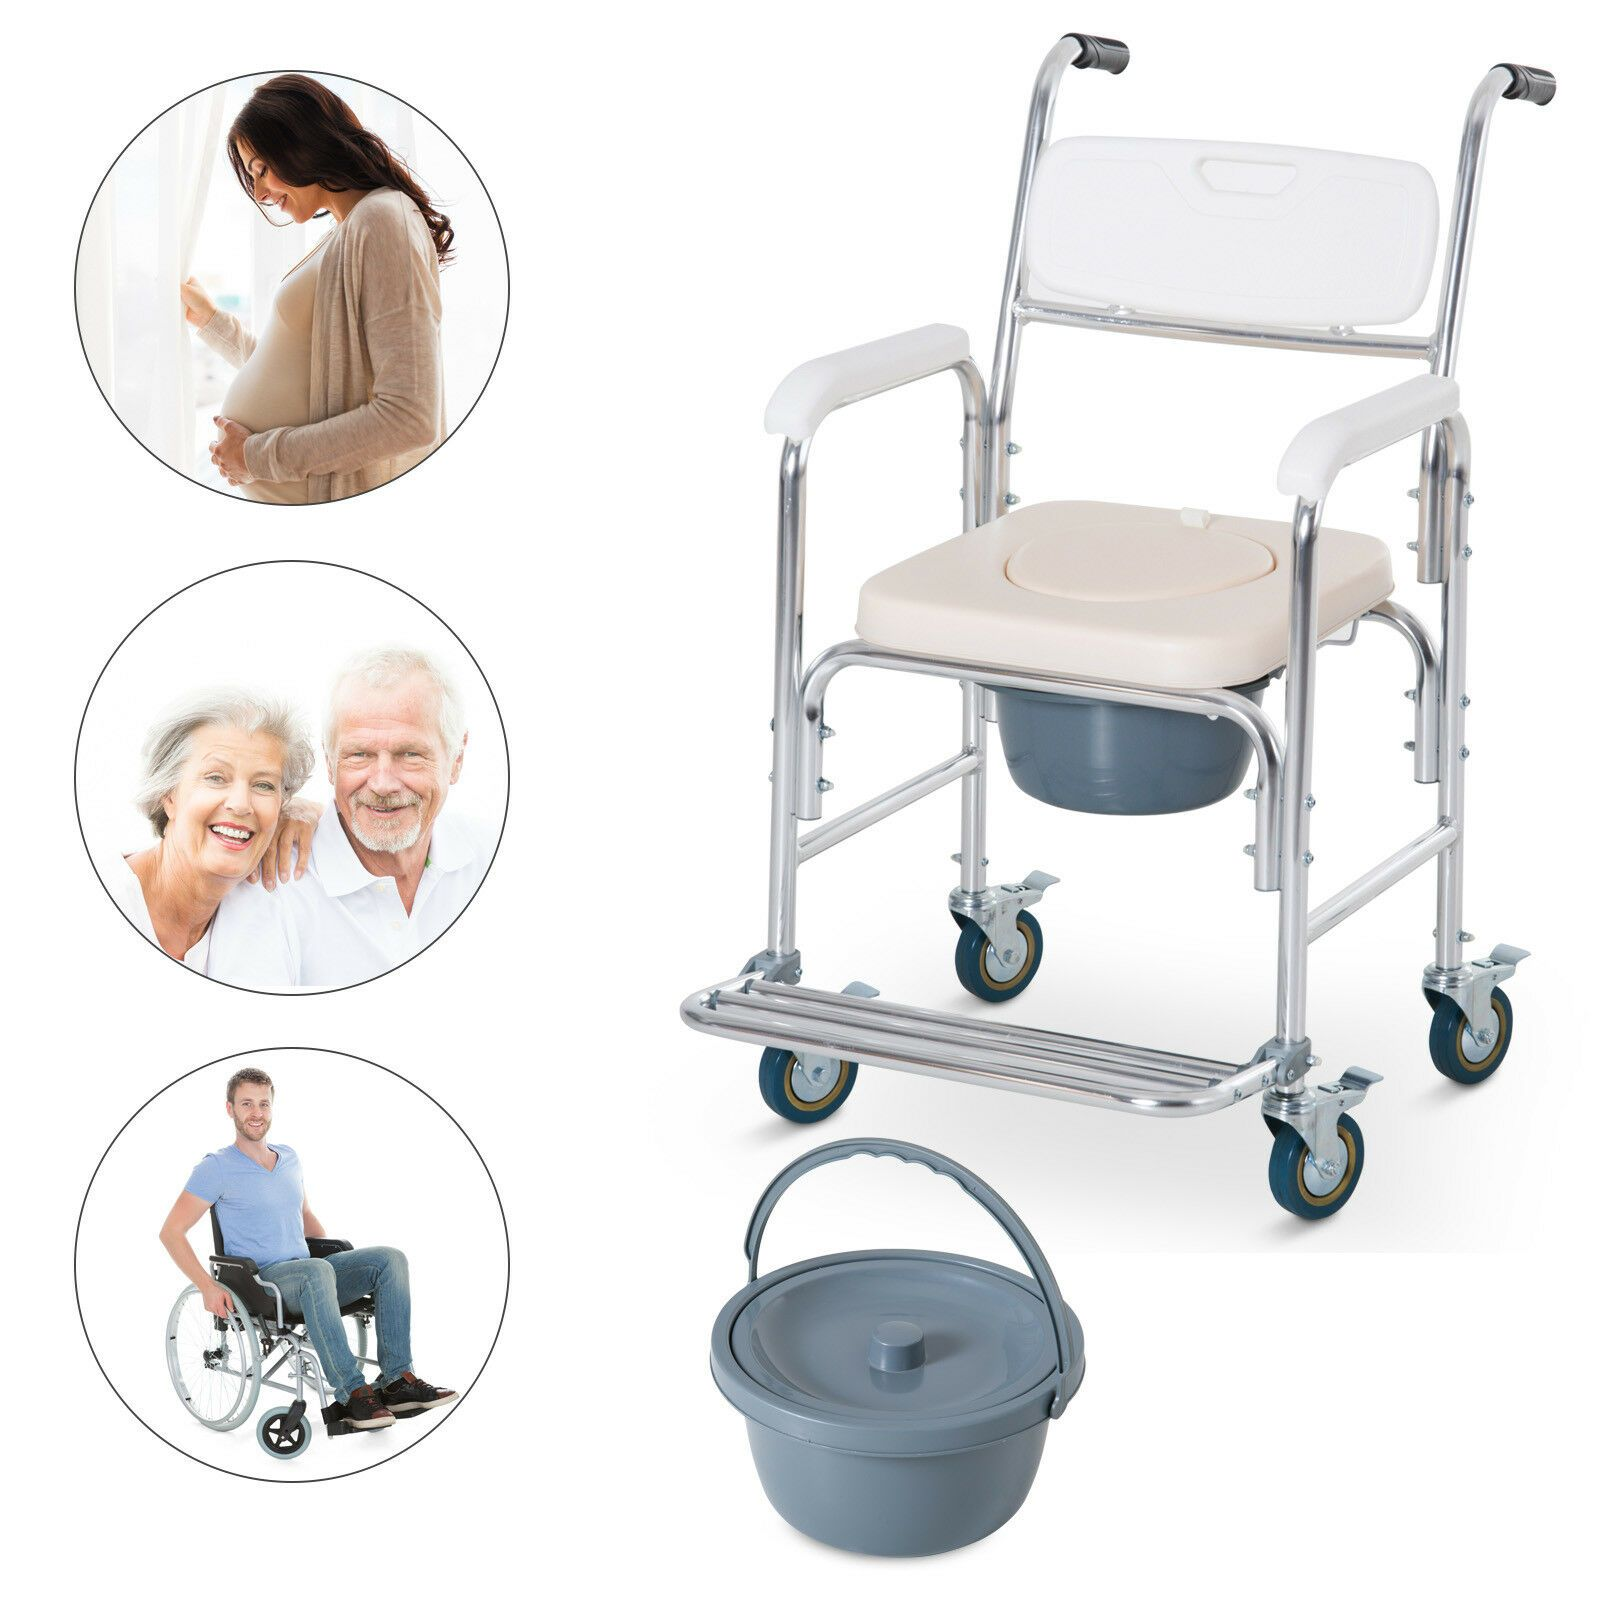 Personal Mobility Assist Waterproof Commode Shower Toilet Transport Wheelchair Wheelchair Ideas Of Wheelchair Whee Transport Wheelchair Wheelchair Commode